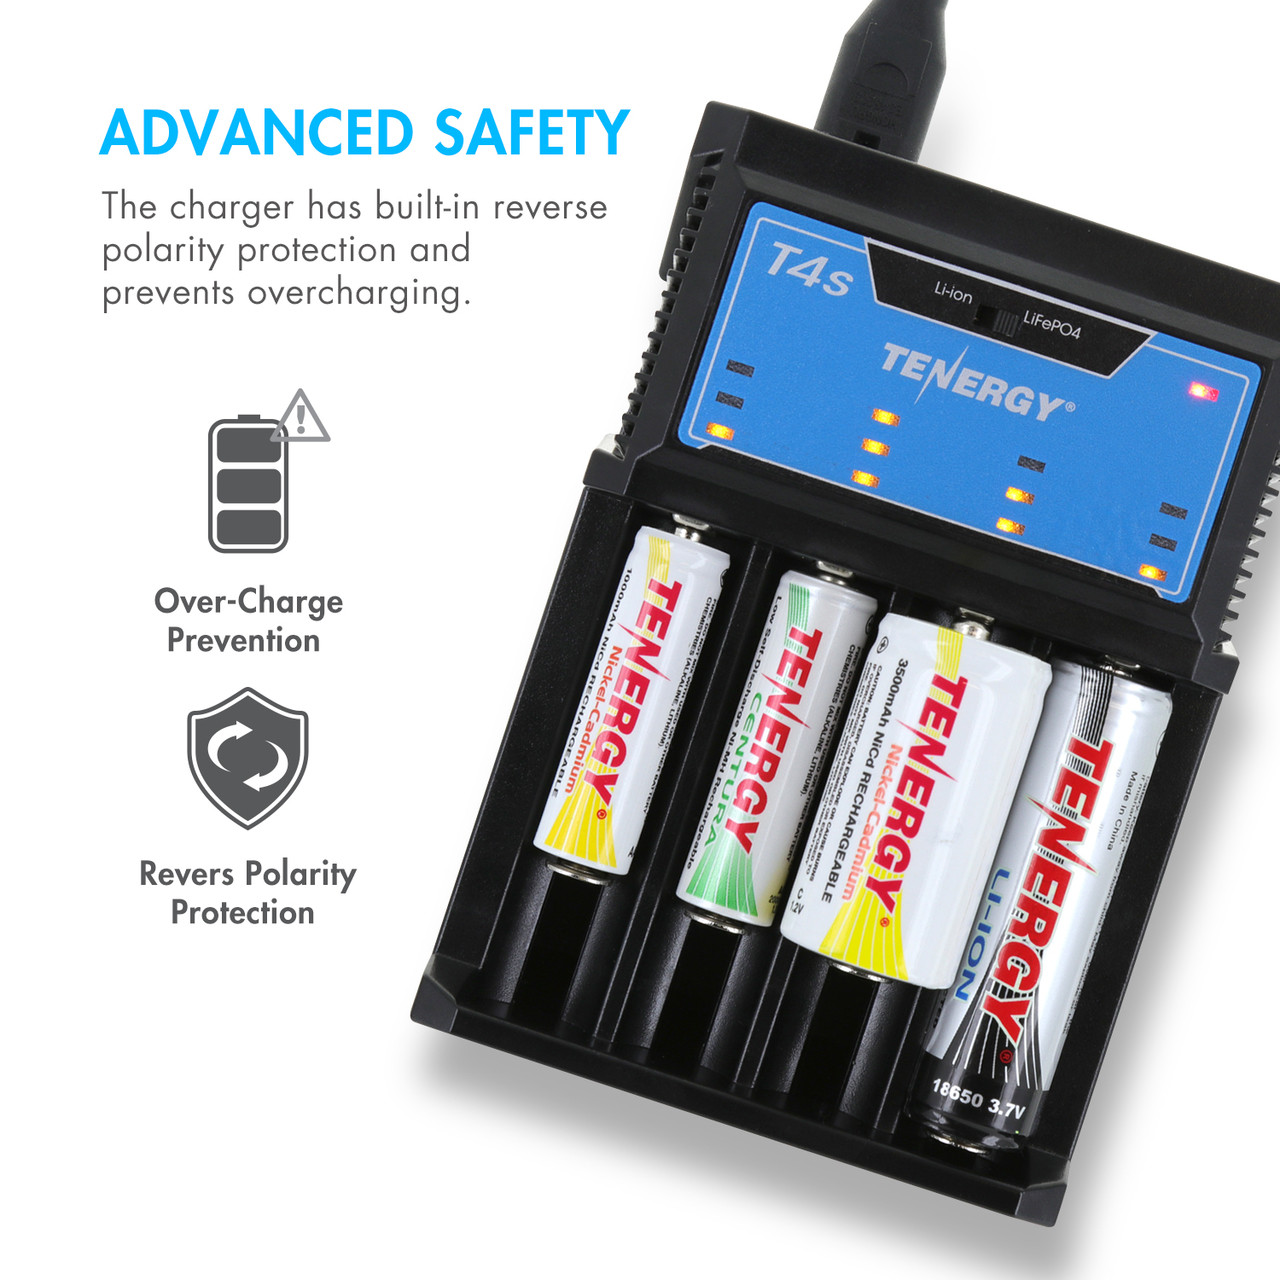 Tenergy T4s Intelligent 4-Bay Universal Charger (for Li-ion, LiFePO4, NiMH and NiCd Rechargeable Batteries)